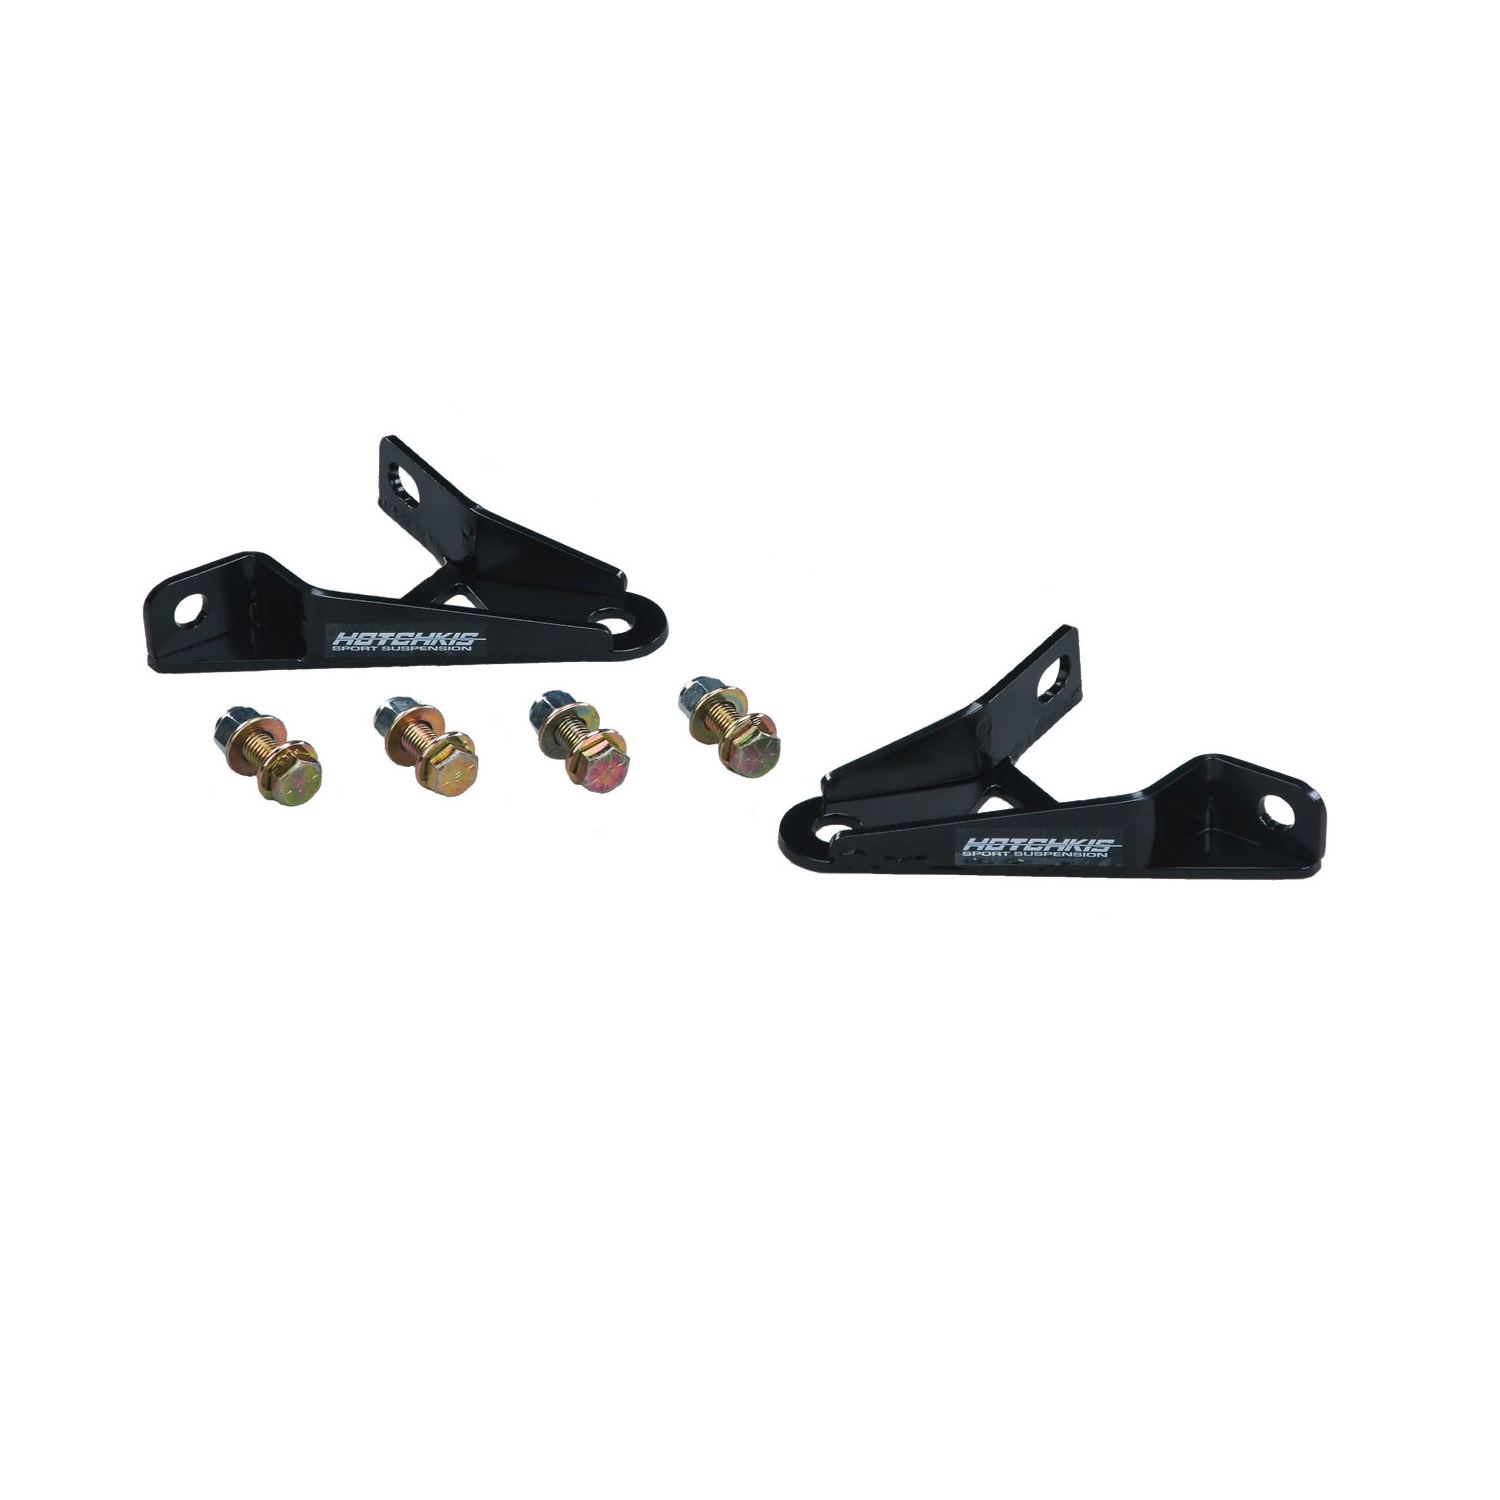 Front Shock Kit with out shocks, C10-70390-WOS